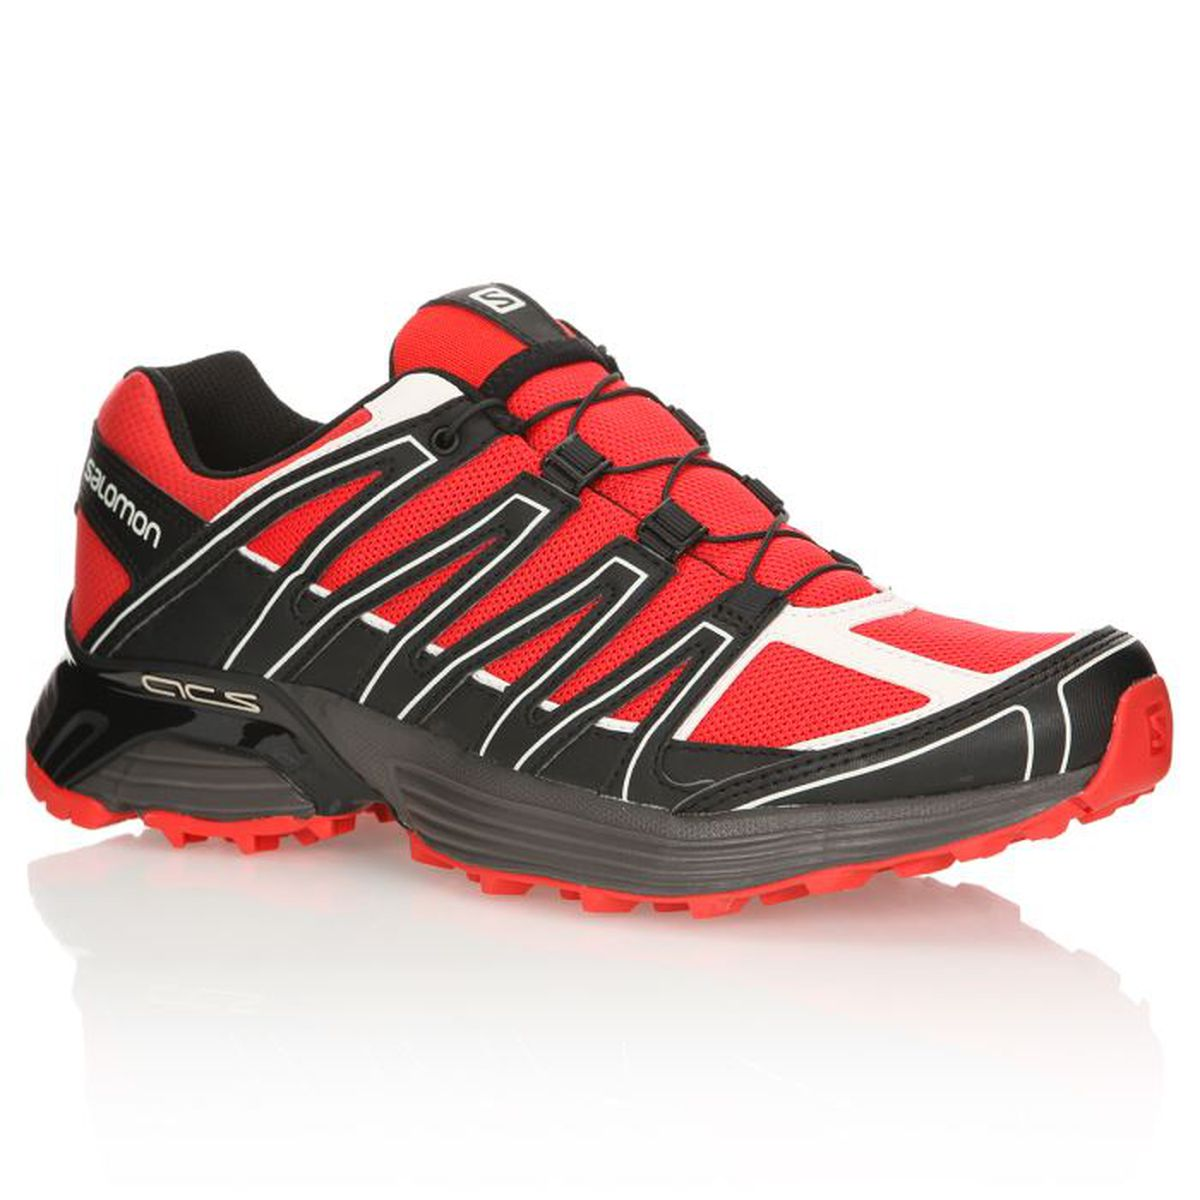 salomon chaussures trail running xt taurus homme prix pas cher cdiscount. Black Bedroom Furniture Sets. Home Design Ideas